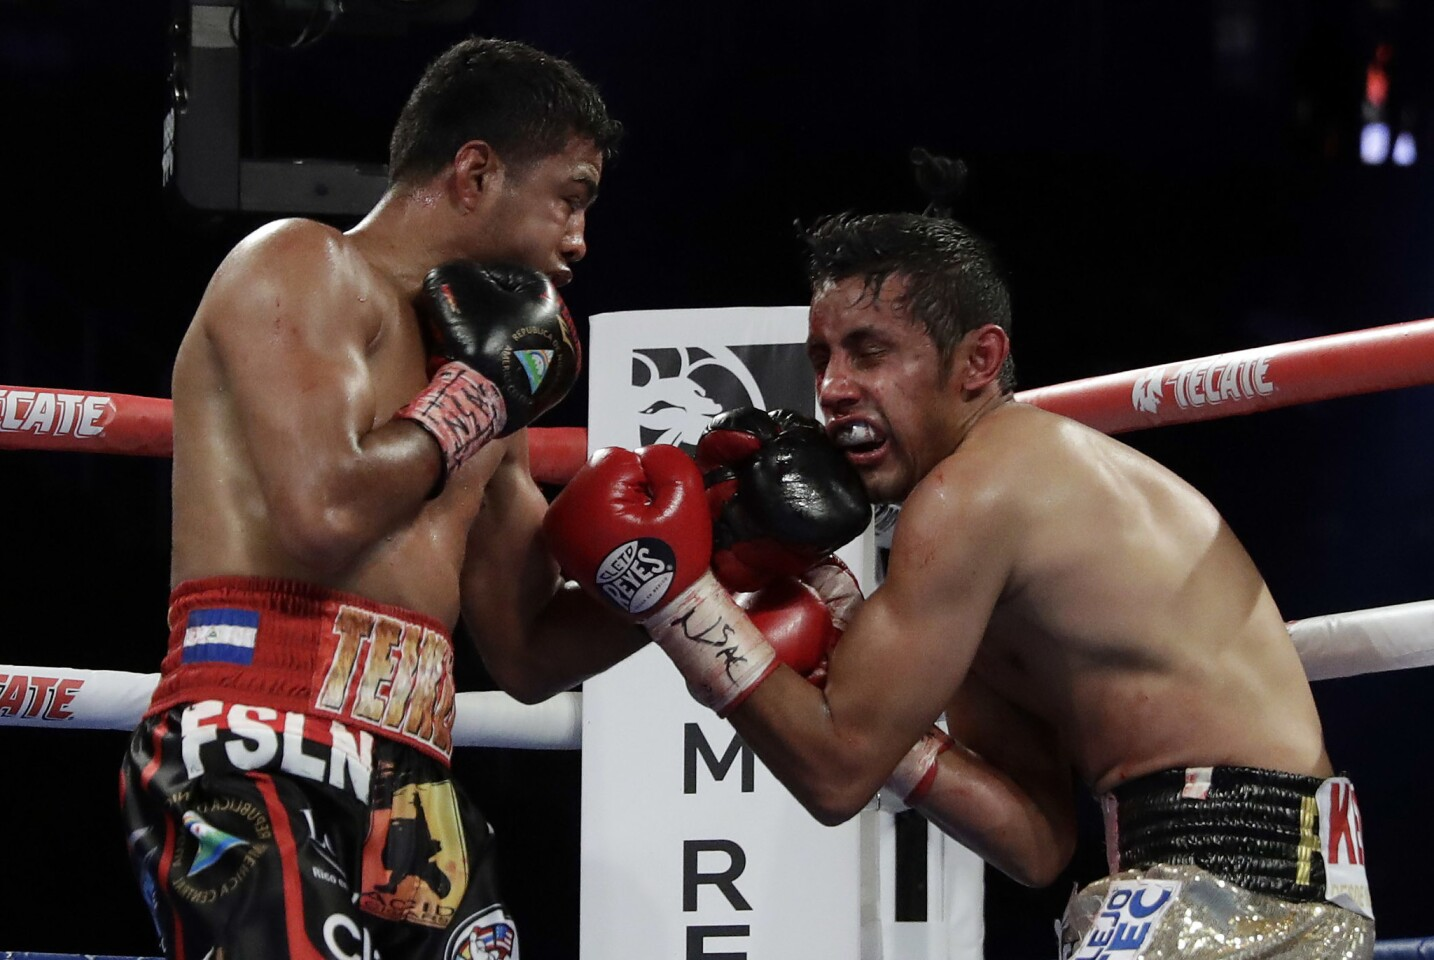 Roman Gonzalez, left, punches Moises Fuentes during their bantamweight boxing match, Saturday, Sept. 15, 2018, in Las Vegas. Gonzalez won by TKO.